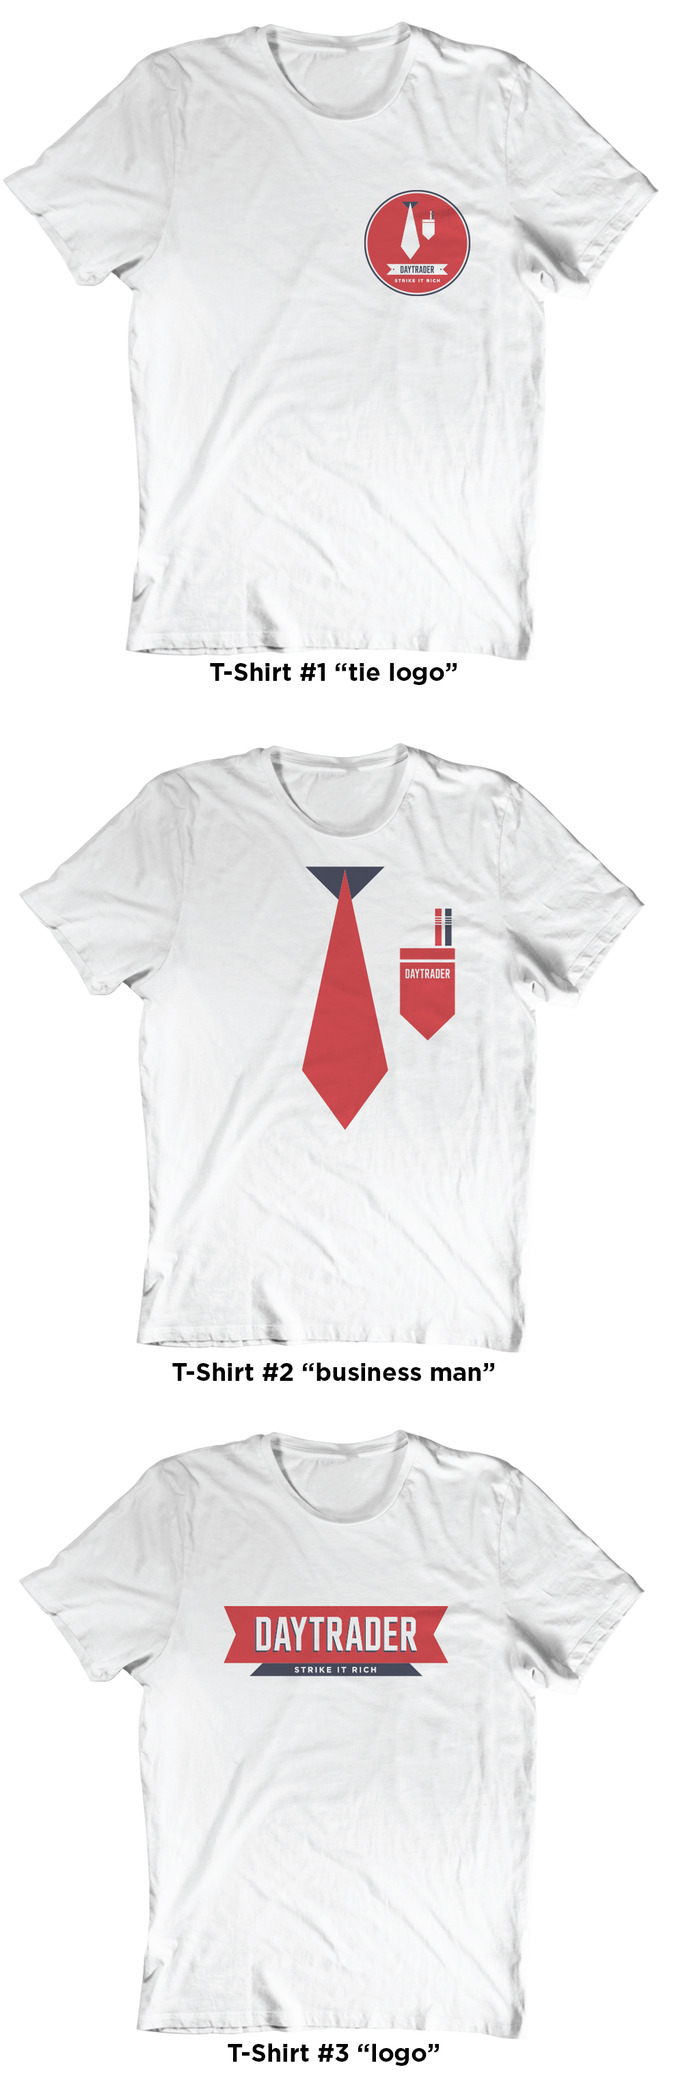 There are 3 great T-Shirts to choose from. But, don't lose your shirt, invest wisely!